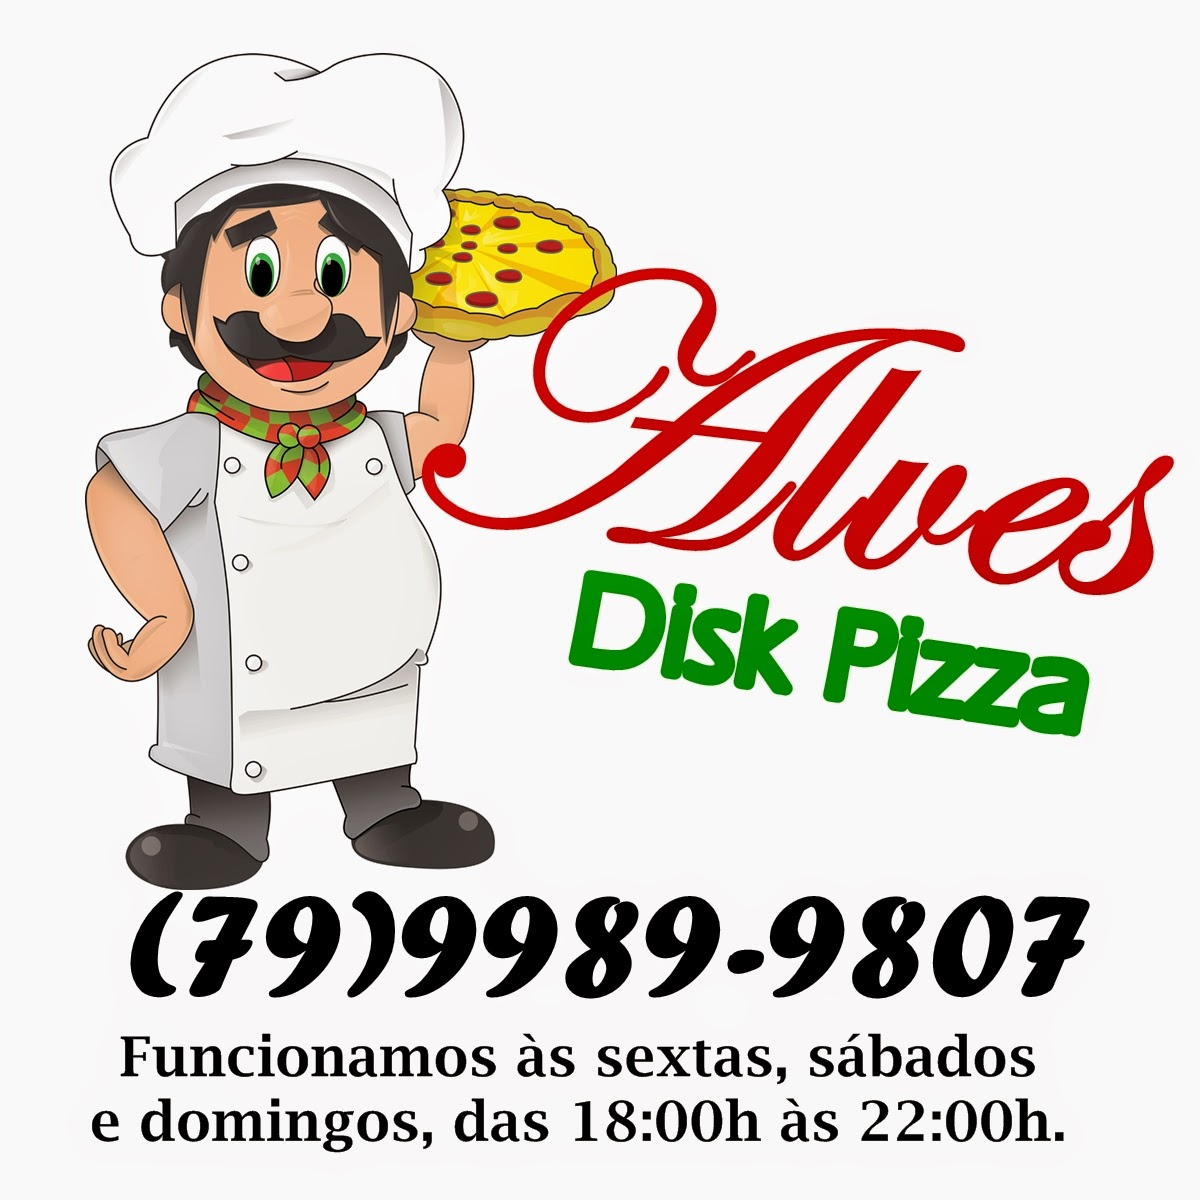 ALVES DISK PIZZA